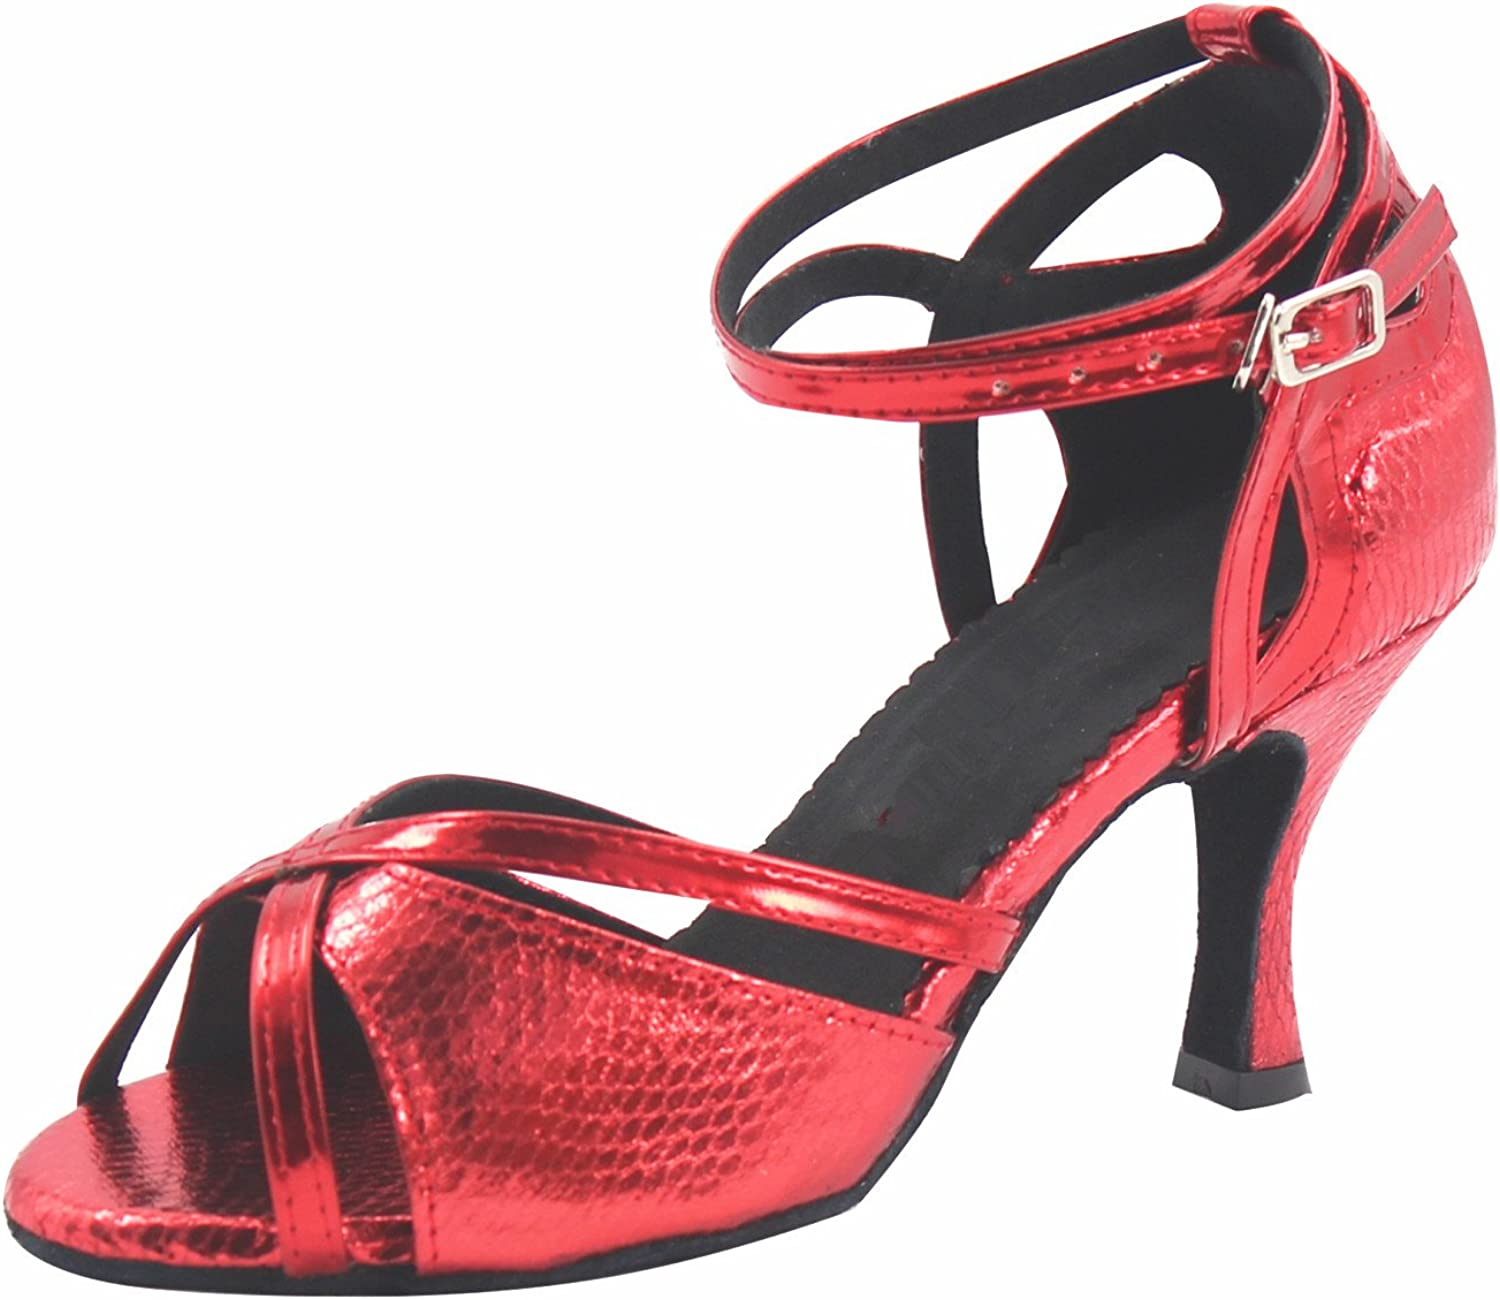 MsMushroom Woman's Shinning Patent Leather Party shoes 2.5''heel,red